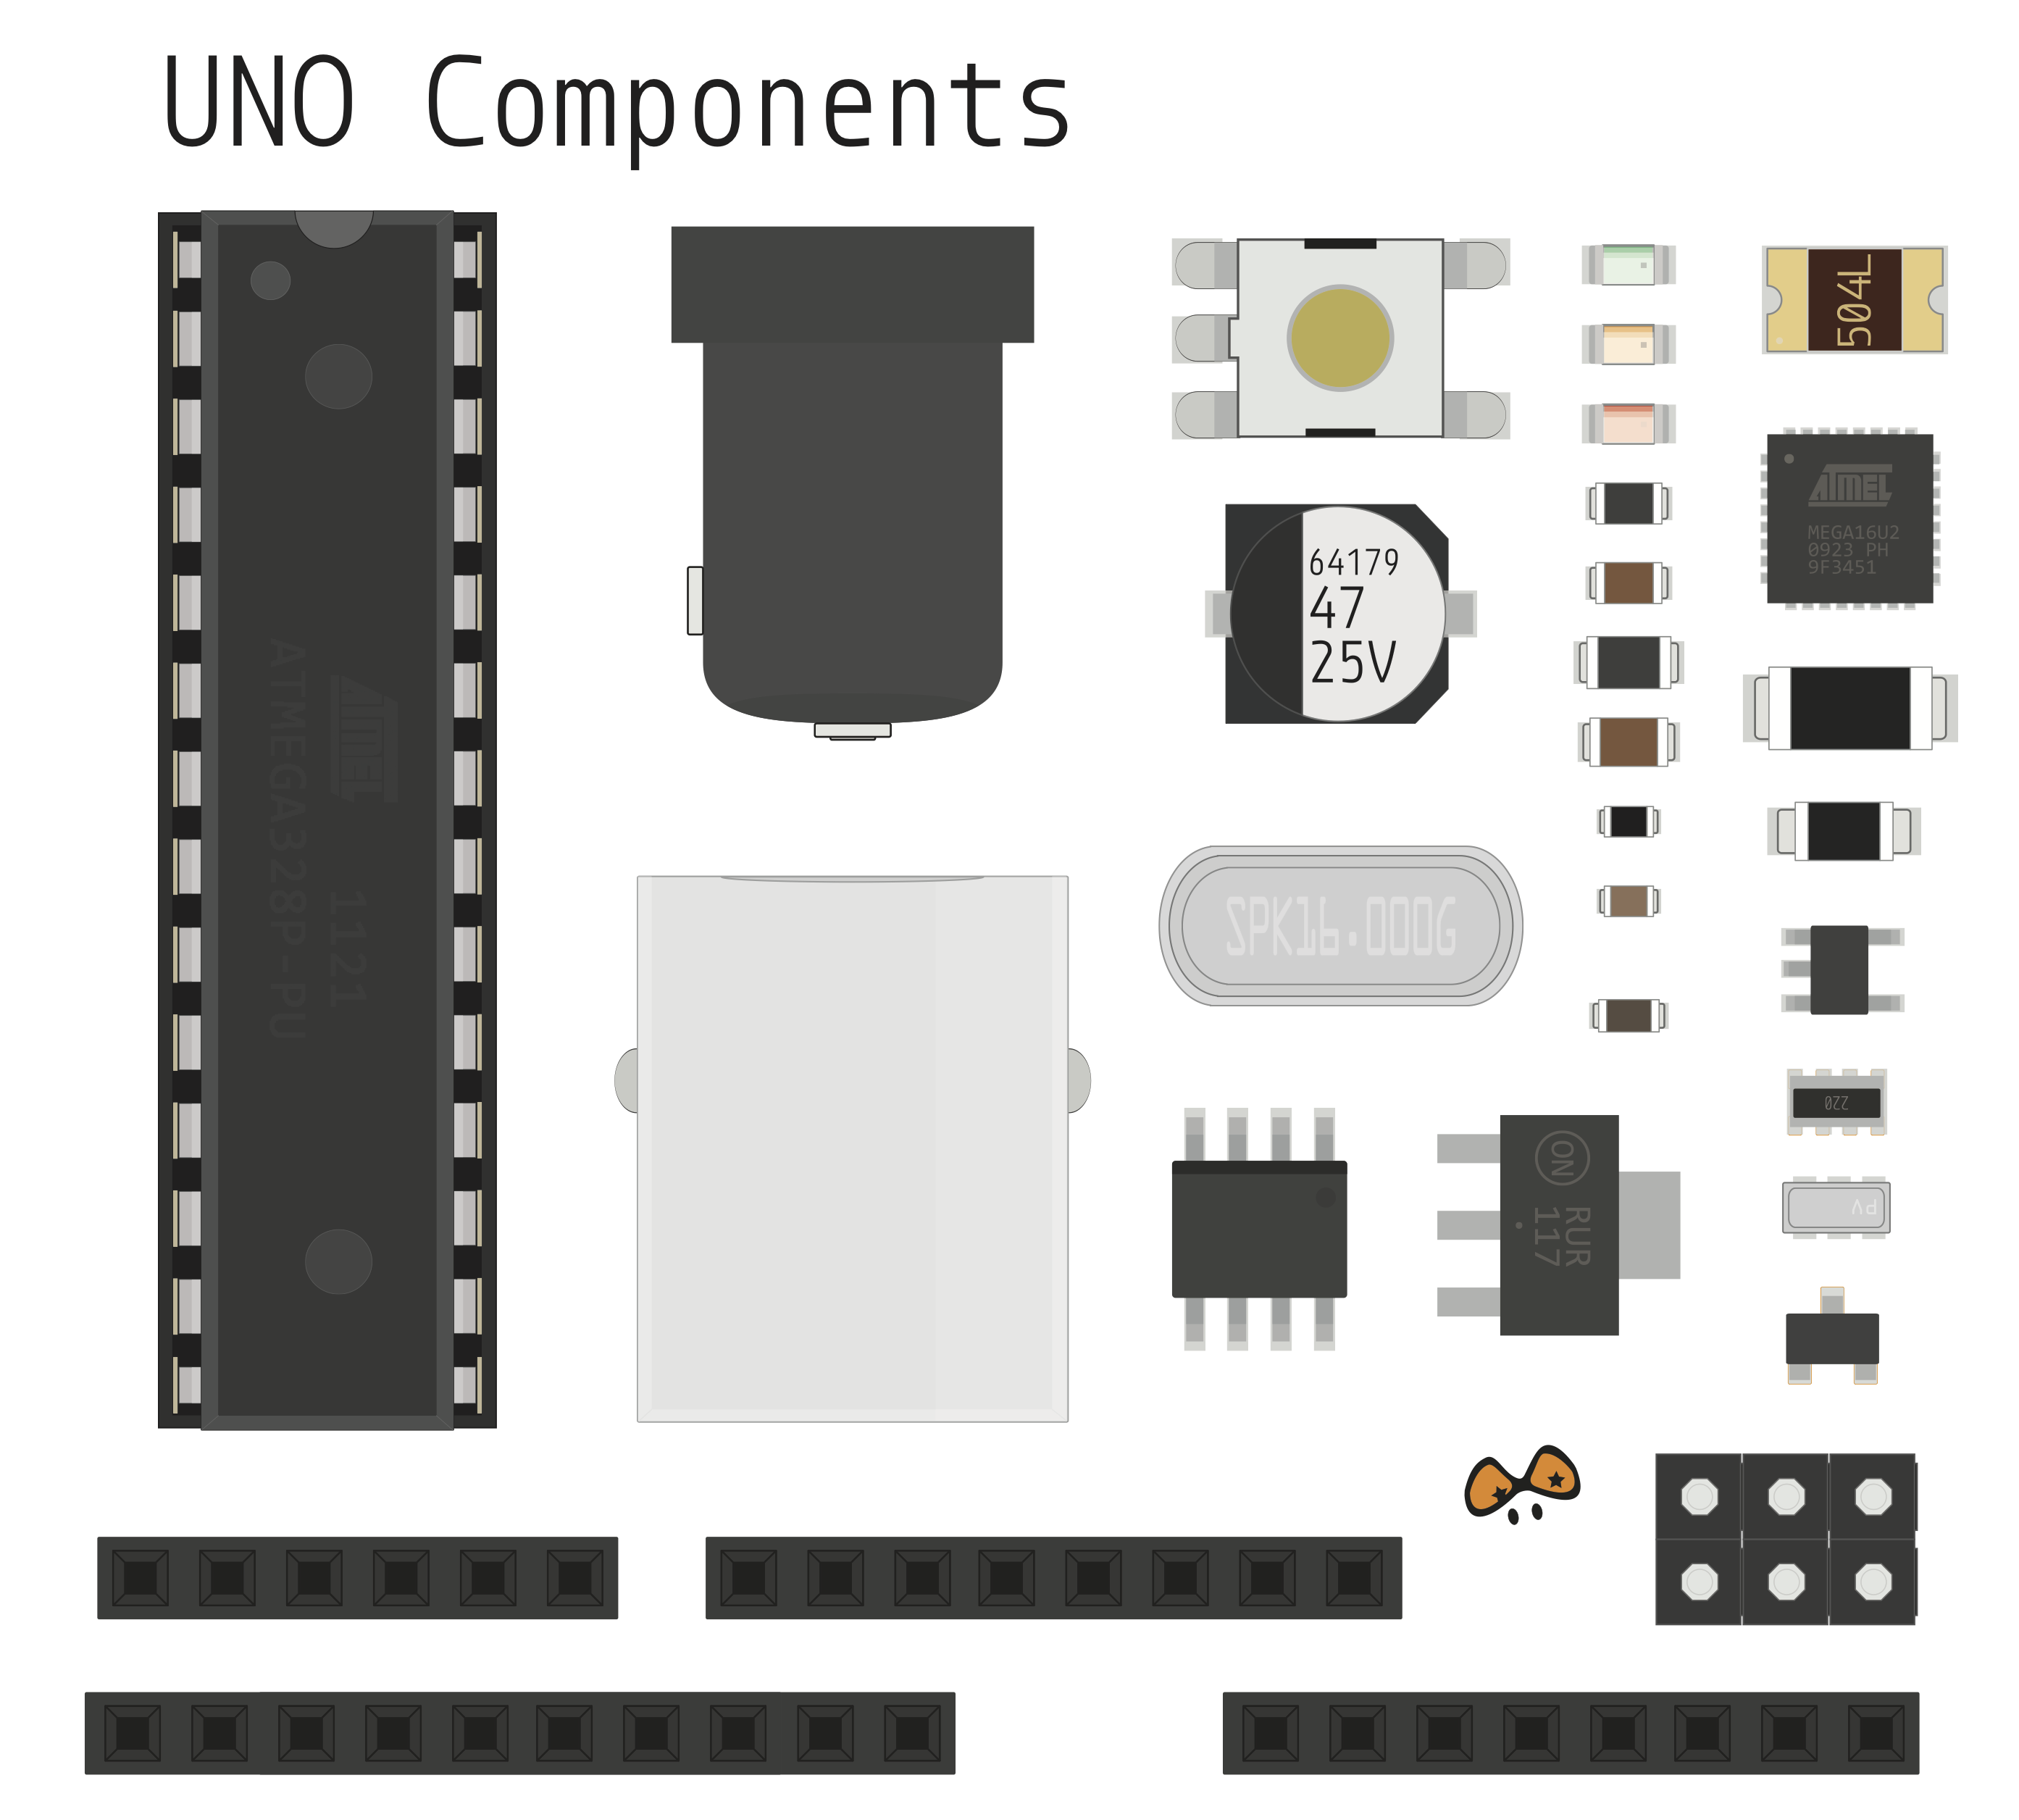 Components uno electronics lab